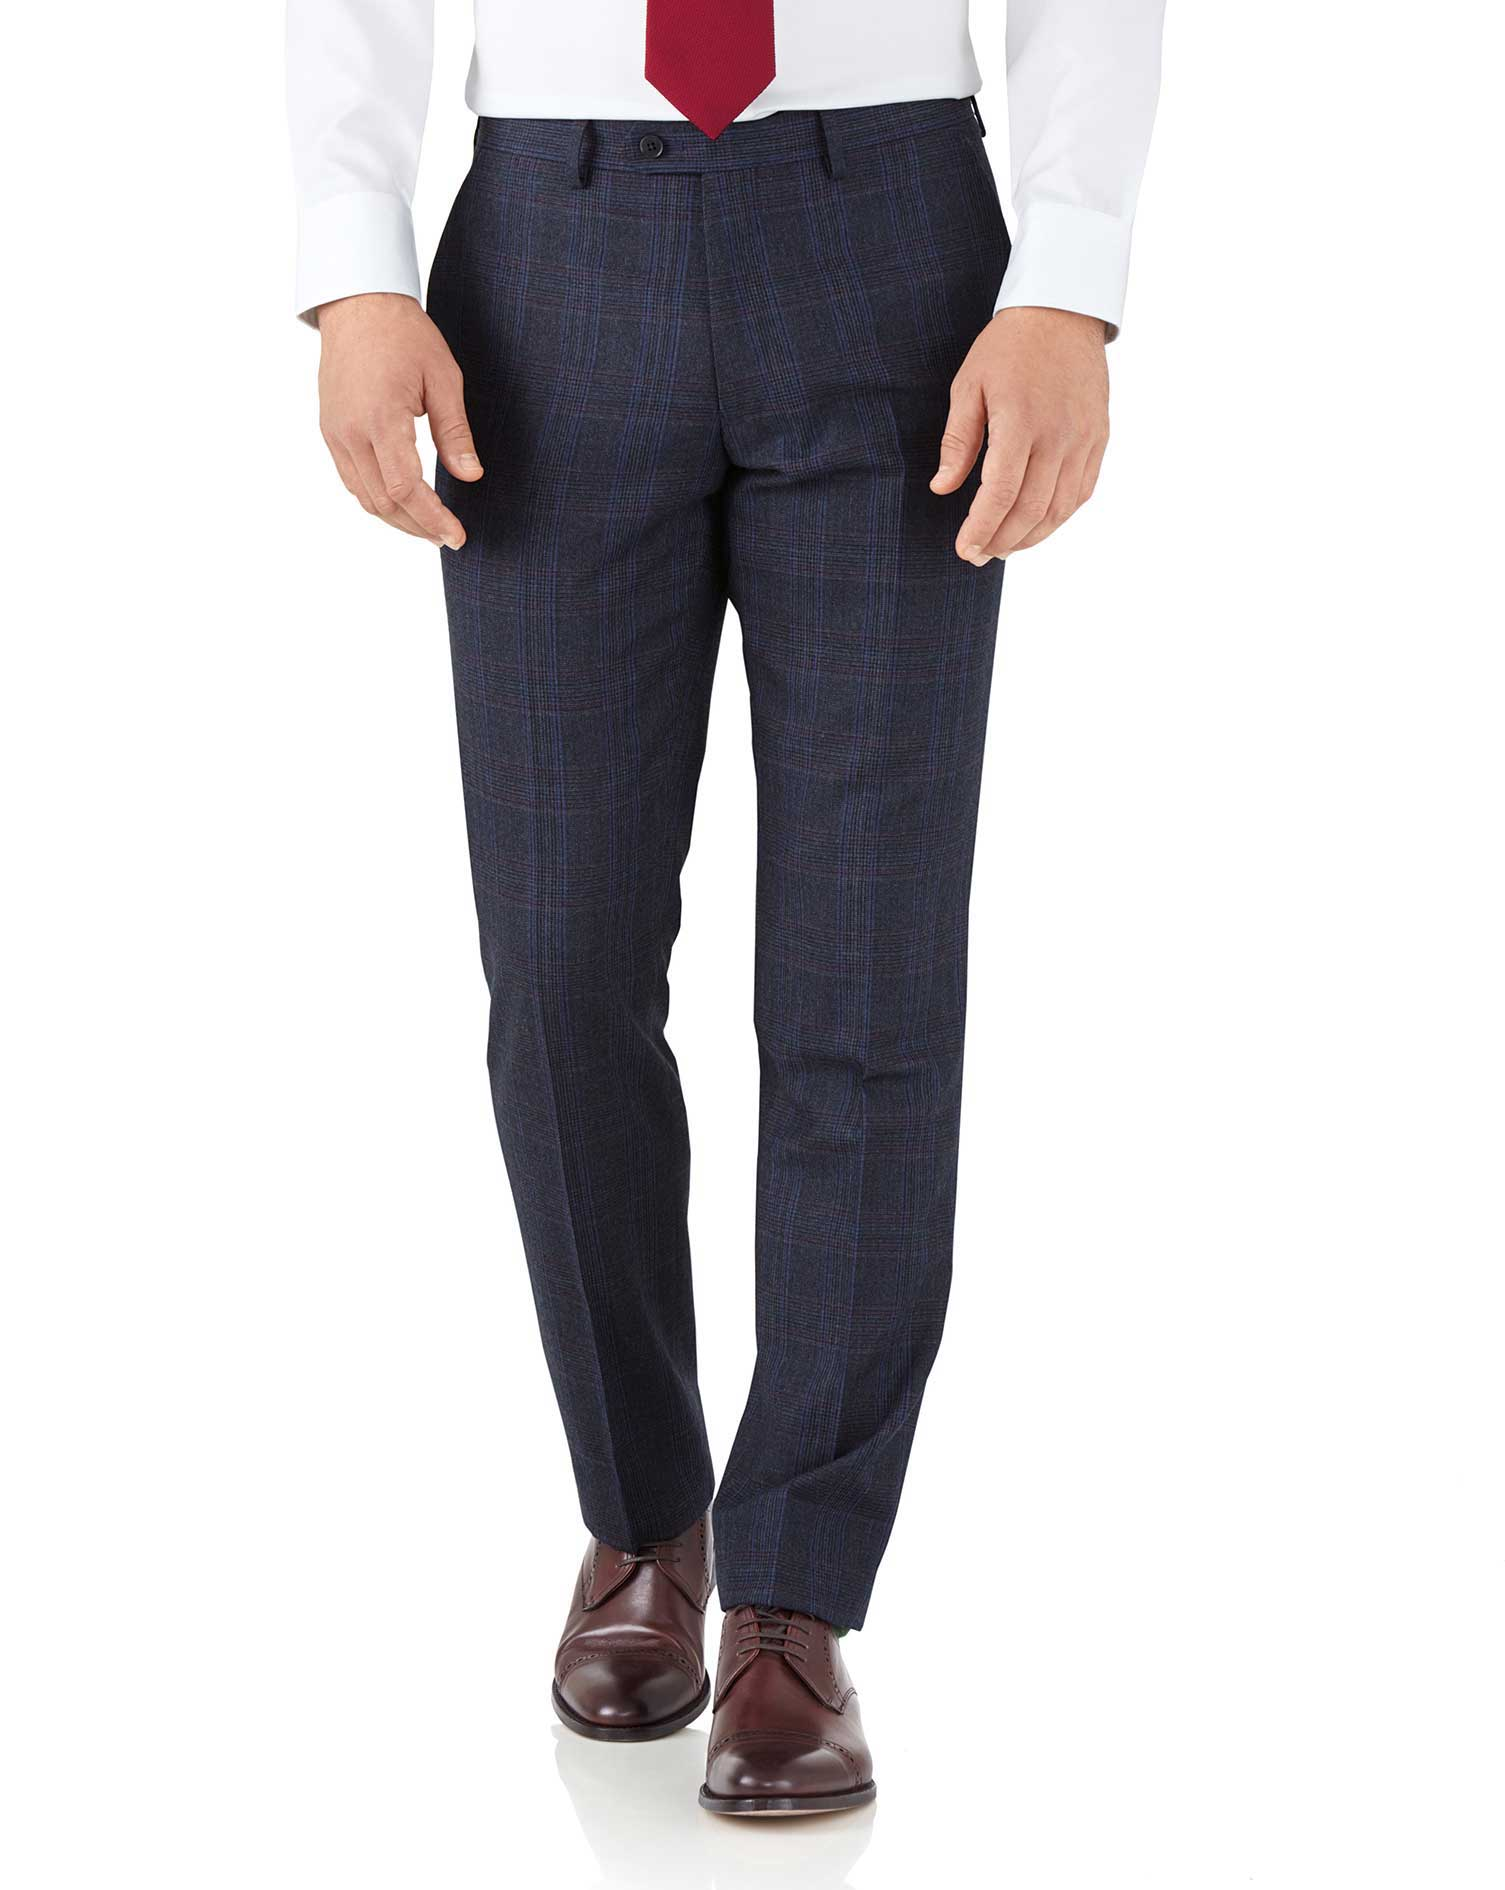 Blue Prince Of Wales Slim Fit Flannel Business Suit Trousers Size W32 L32 by Charles Tyrwhitt